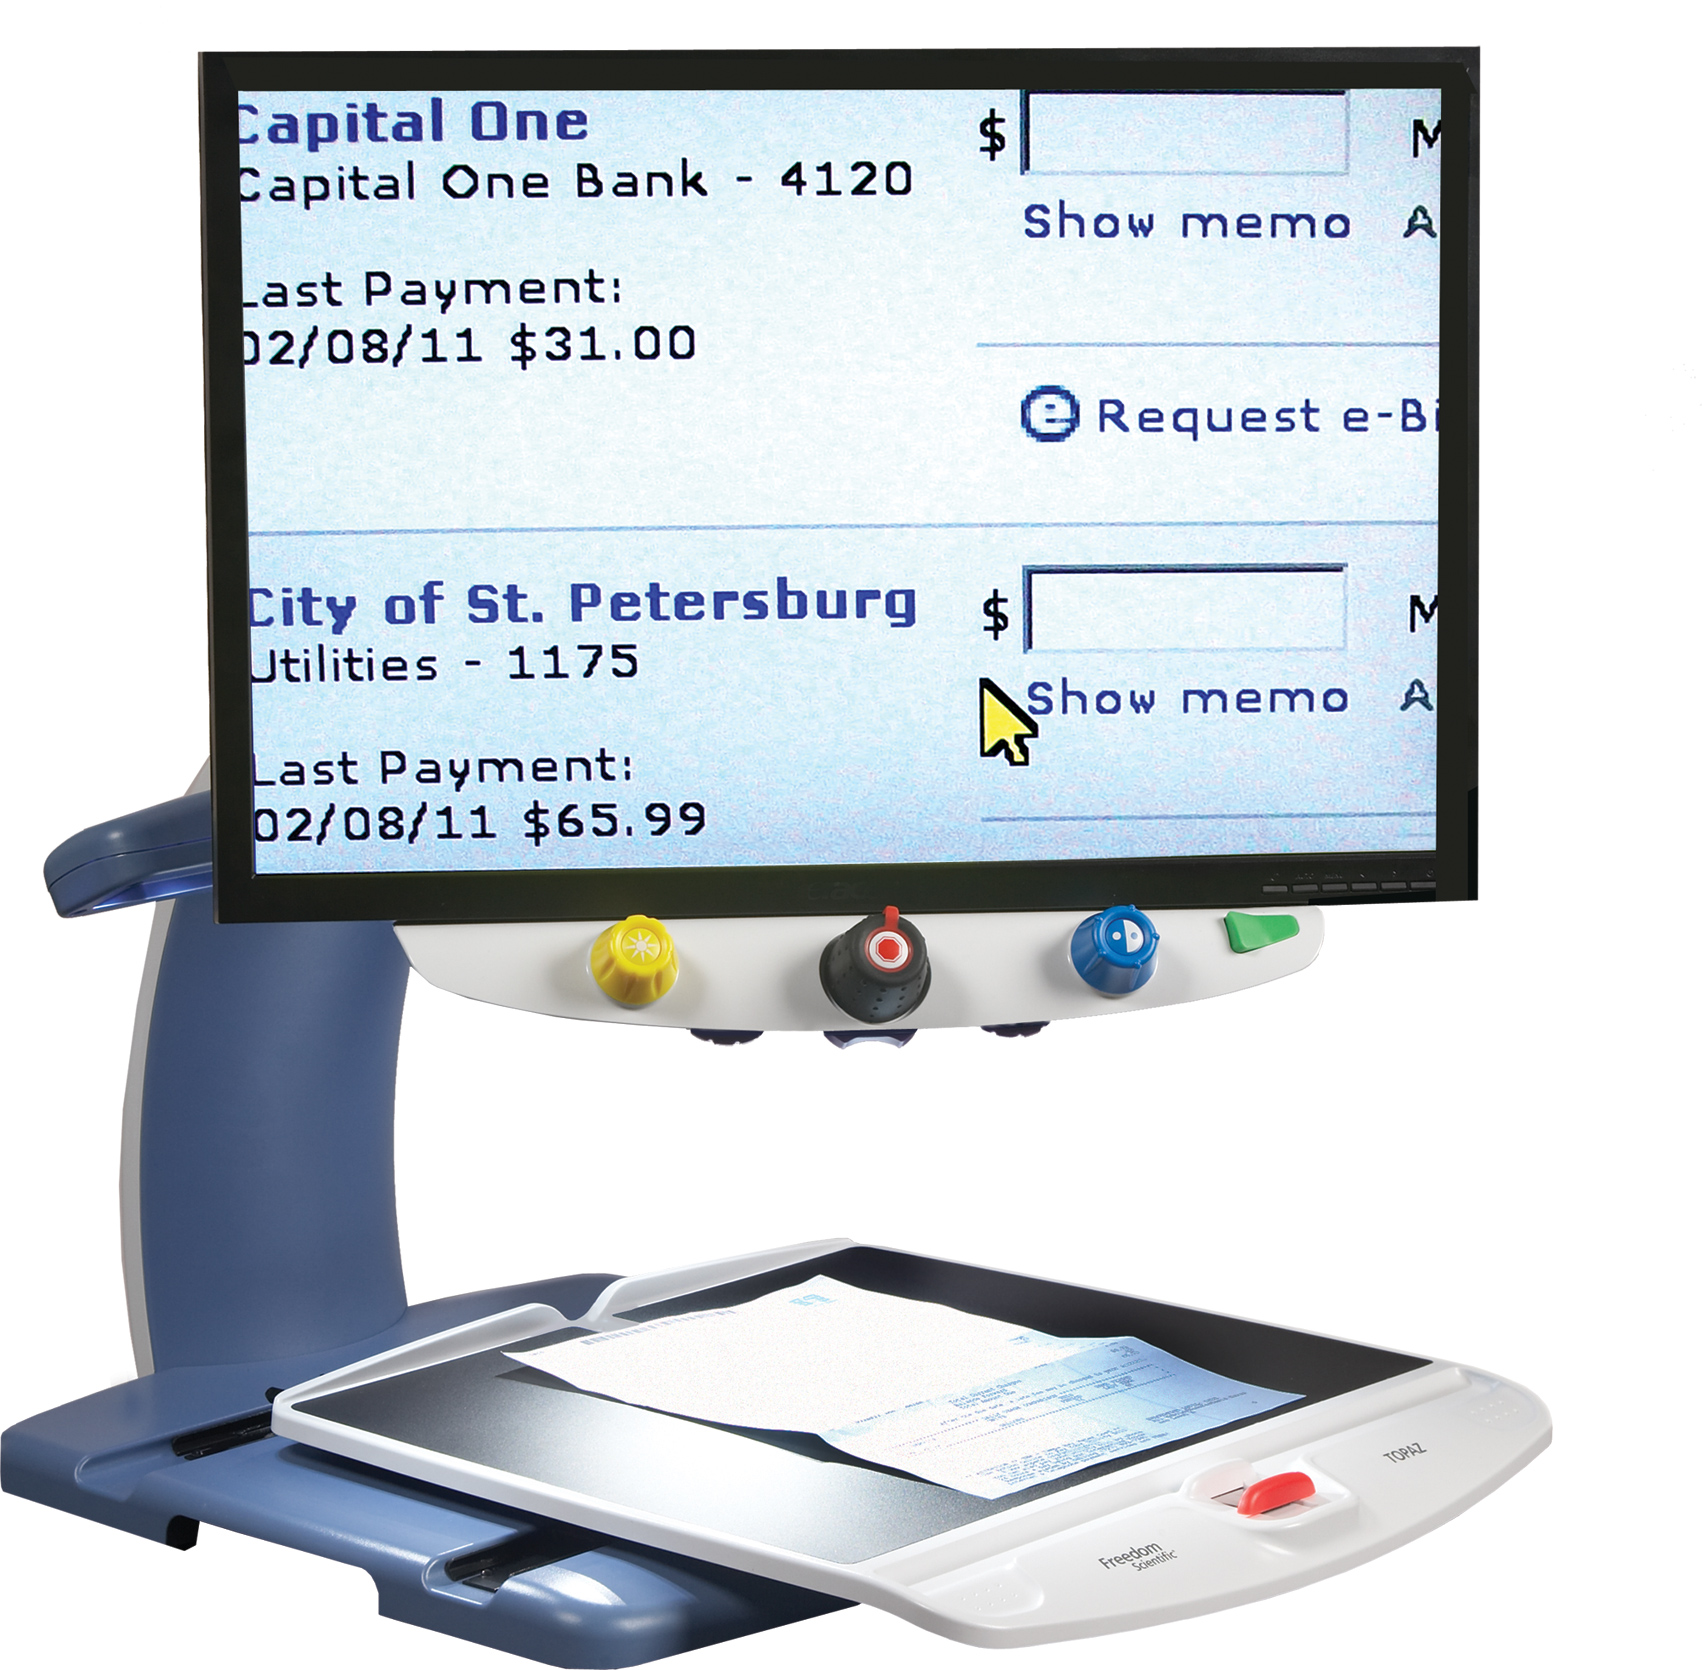 Topaz magnifier helping with bank statement